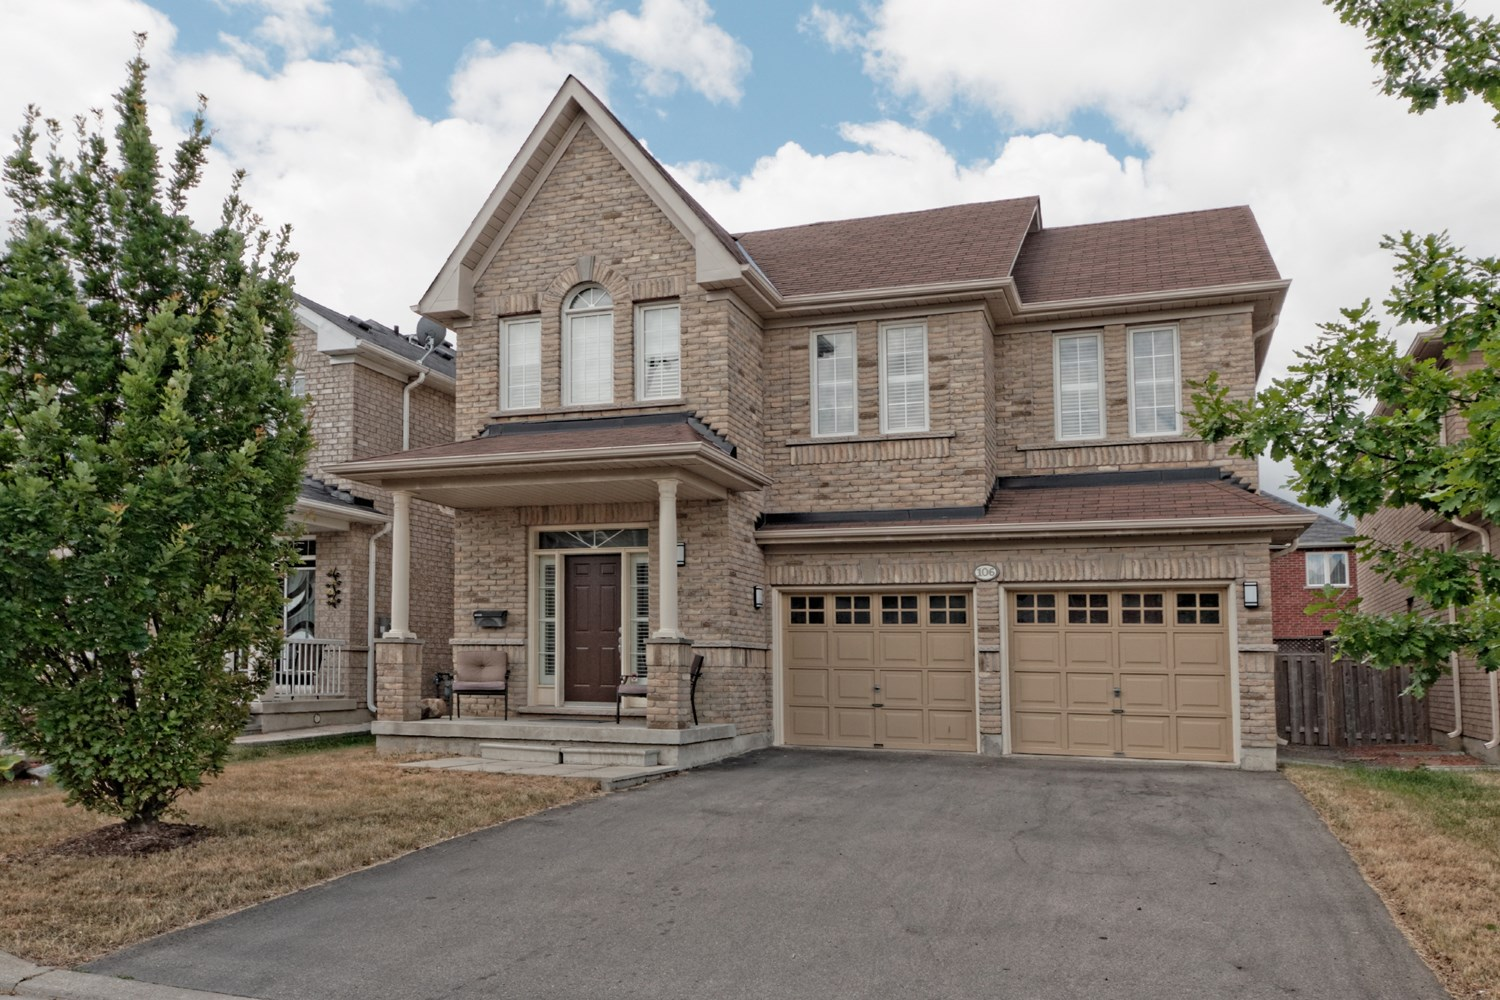 JUST LISTED IN THORNHILL WOODS 106 RIVINGTON AVENUE